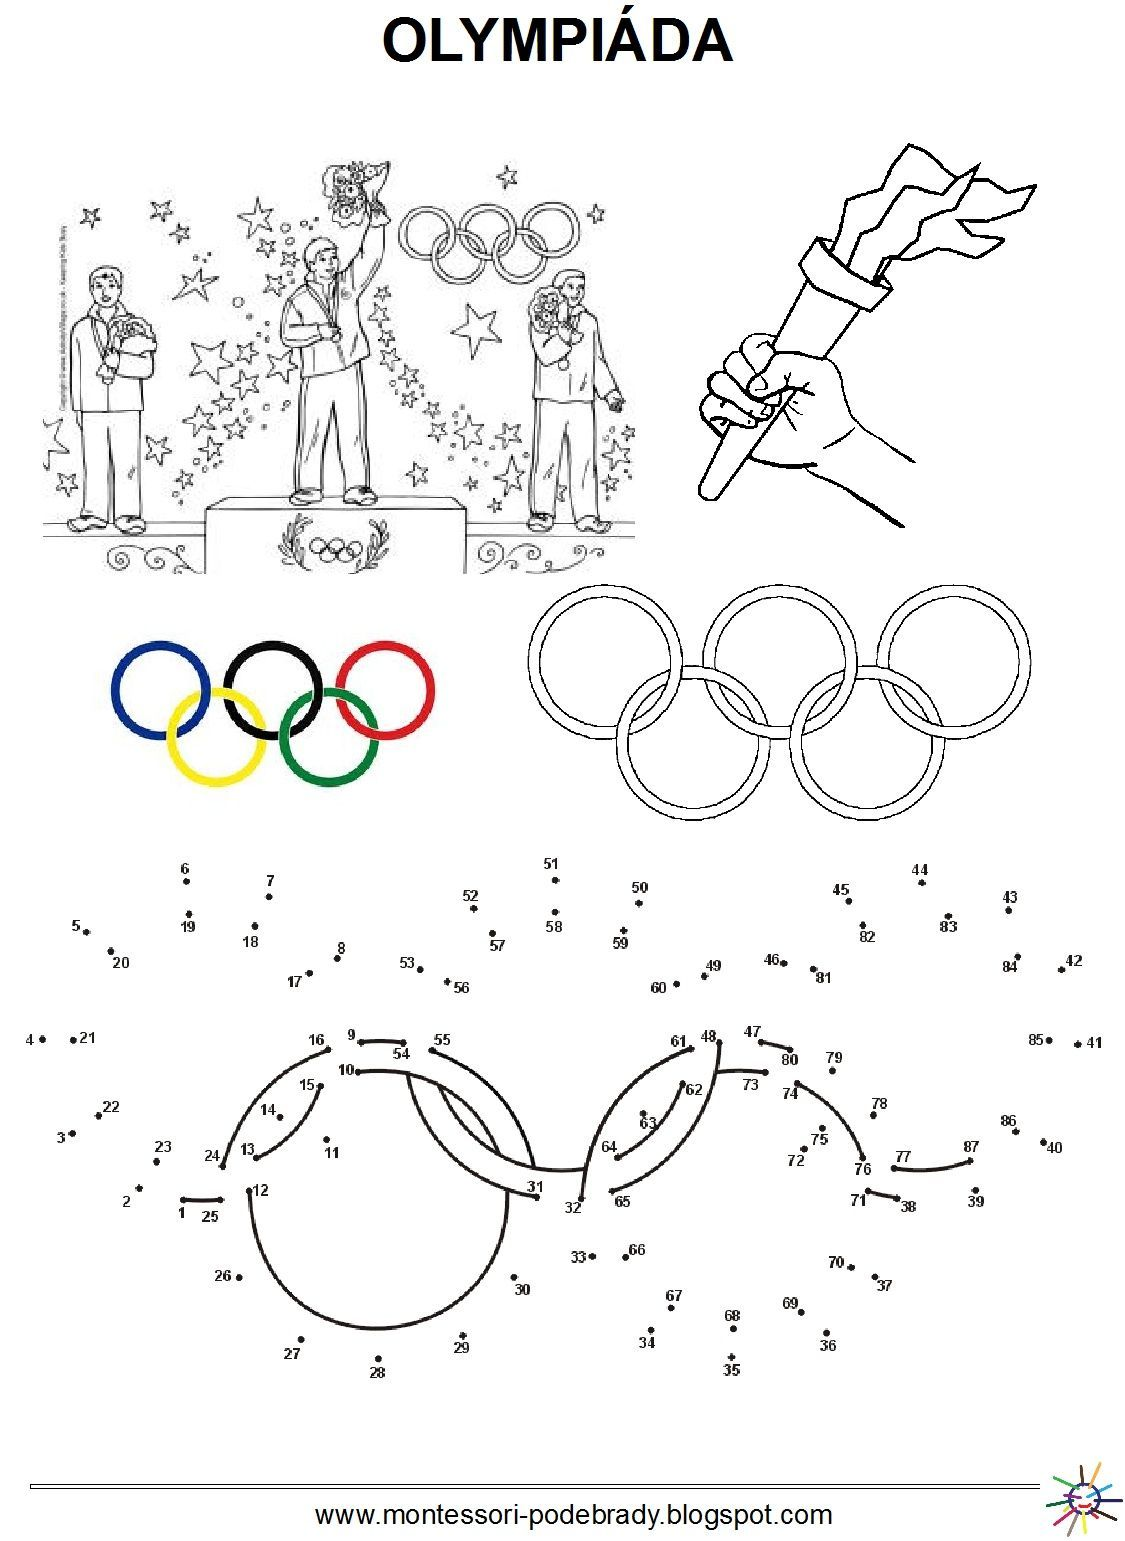 Pin By Esther V On School Olympischespelen